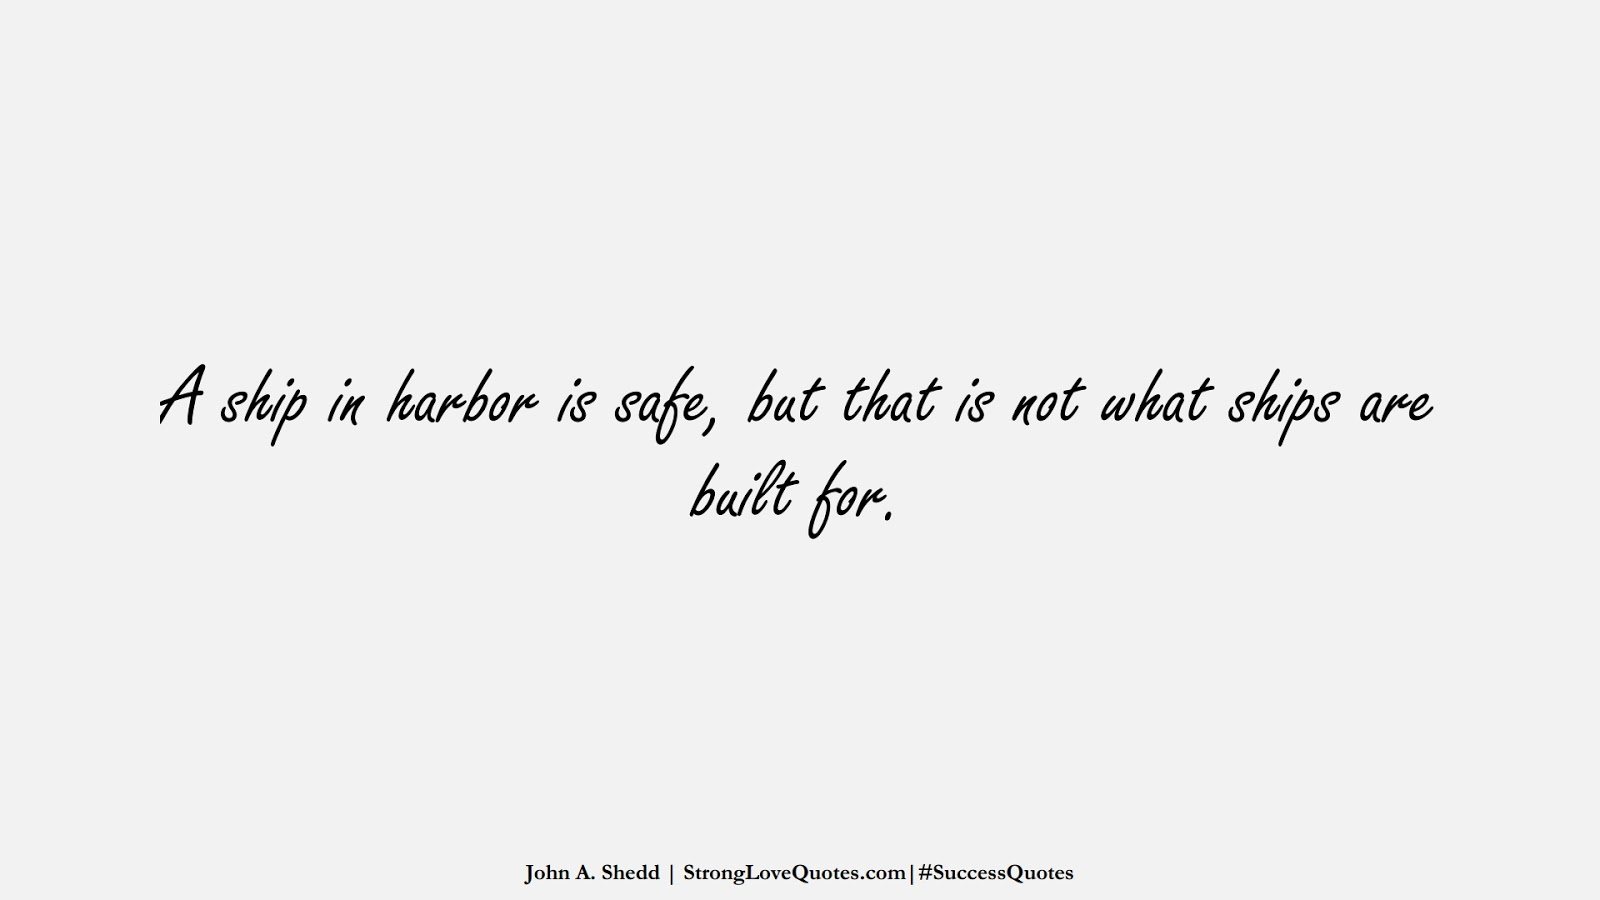 A ship in harbor is safe, but that is not what ships are built for. (John A. Shedd);  #SuccessQuotes